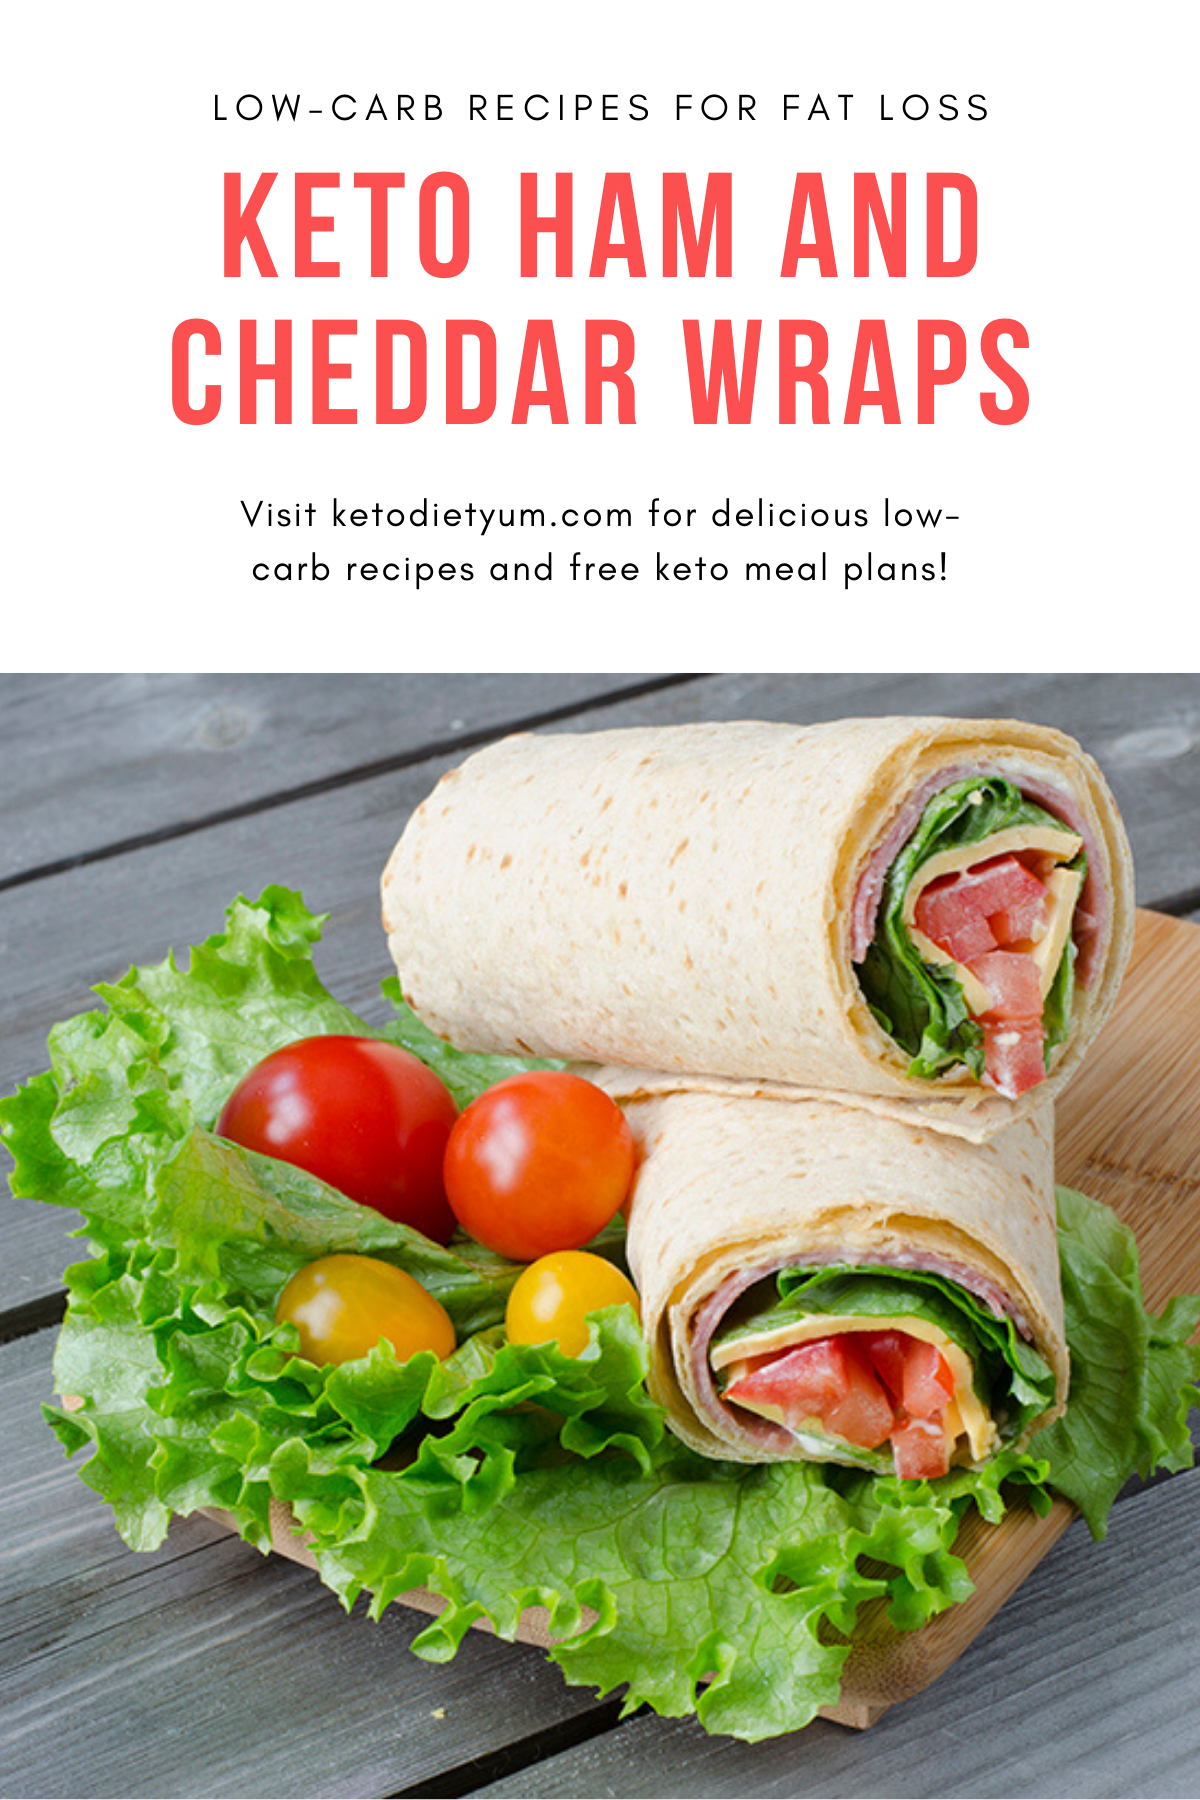 Keto Ham and Cheddar Wraps. These delicious ham and cheddar wraps are made with a low-carb keto-friendly wrap. A simple, quick and easy lunch or snack that will fit in well with your keto diet. #ketodiet #ketorecipes #lowcarbrecipes